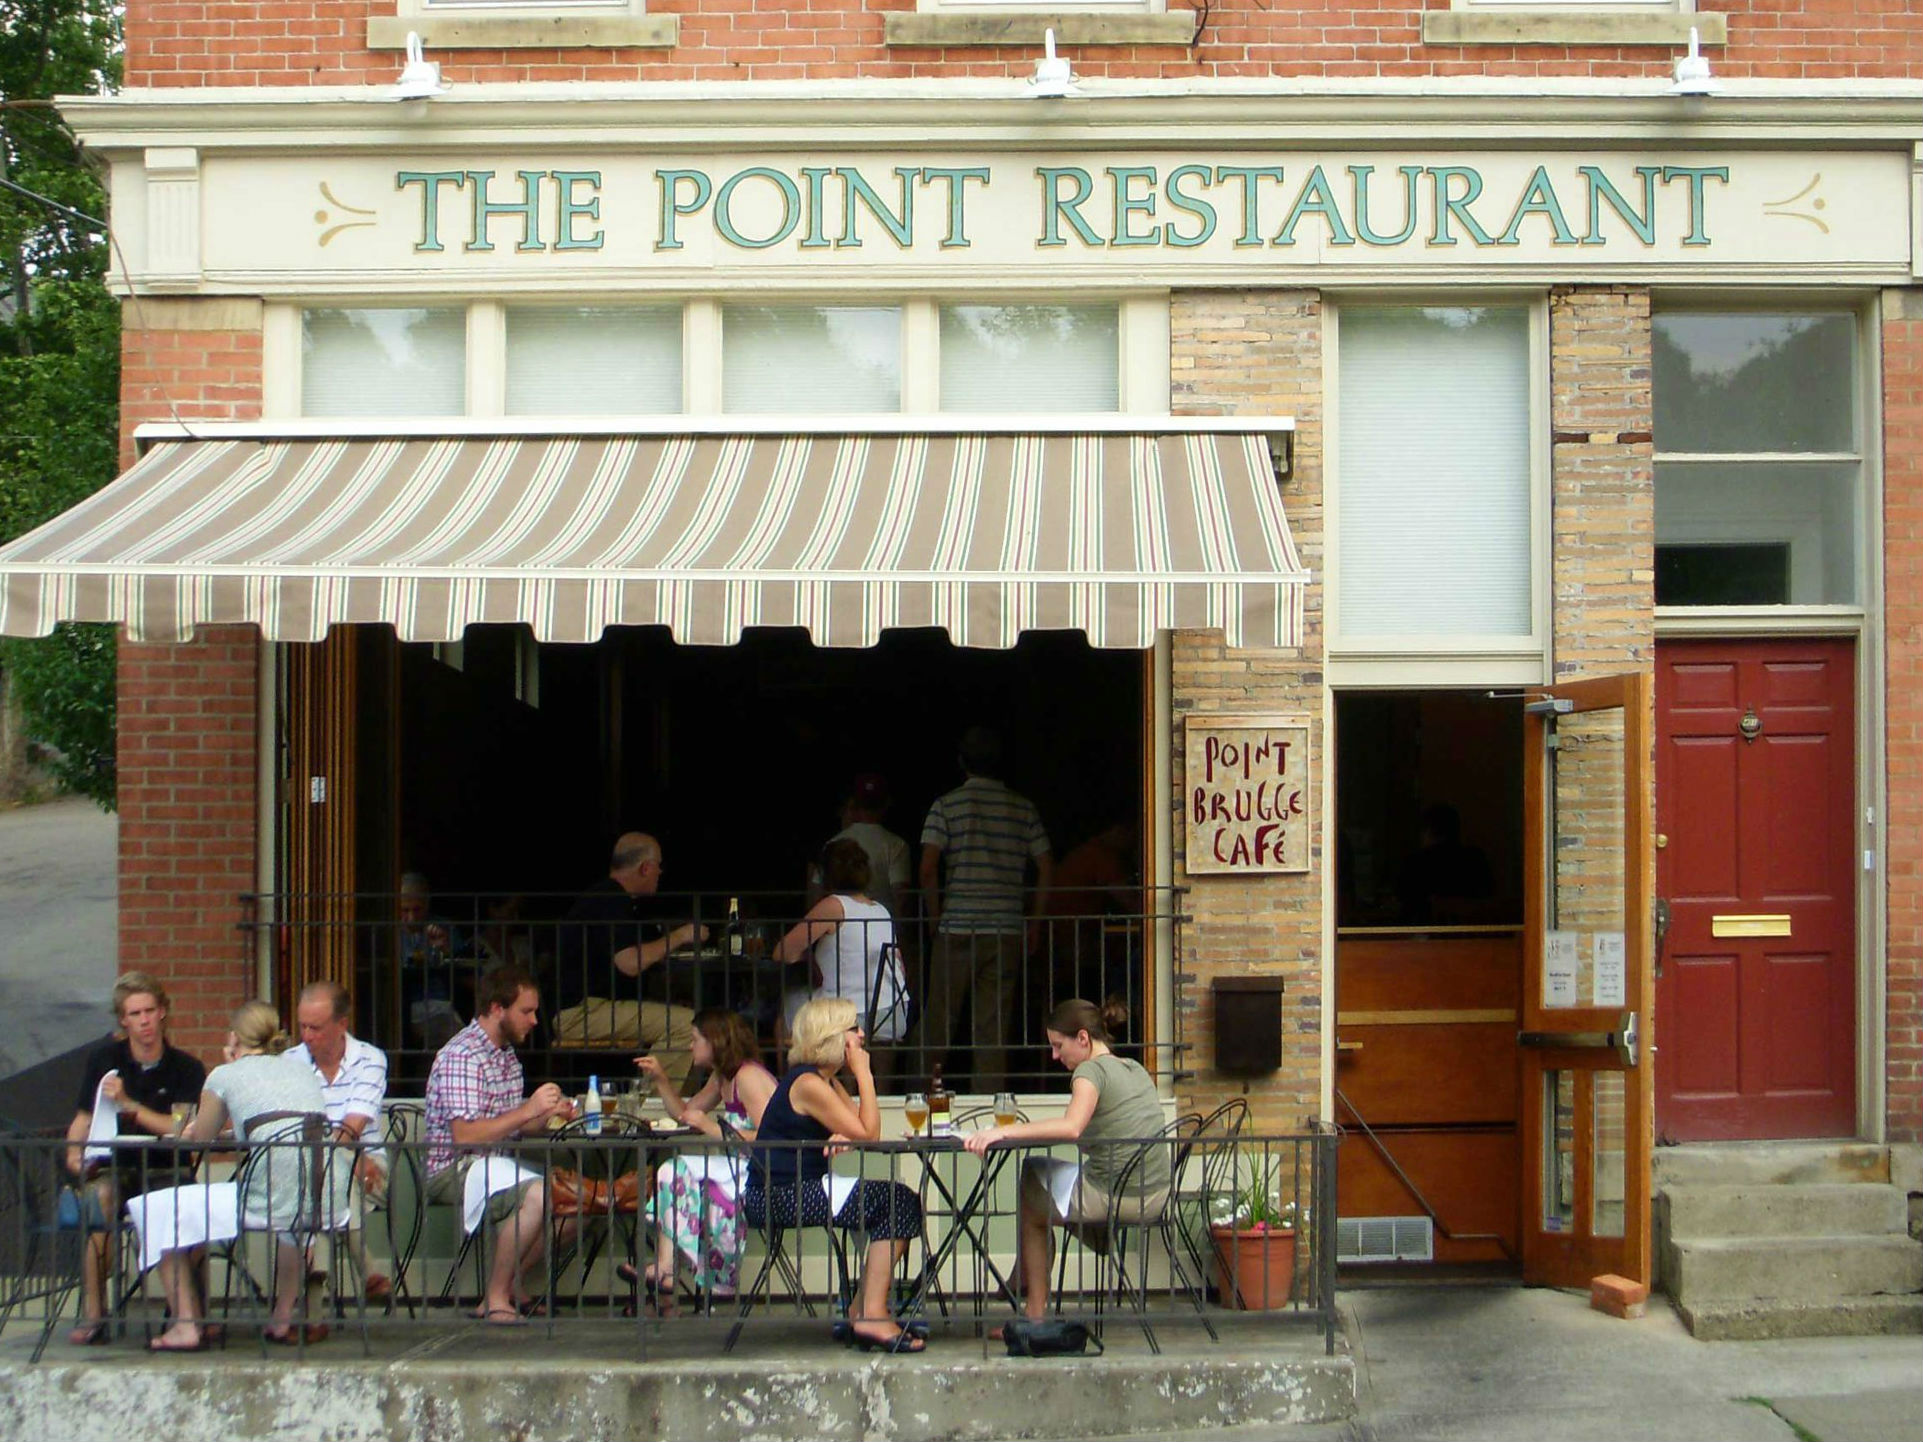 Point Brugge Cafe photo